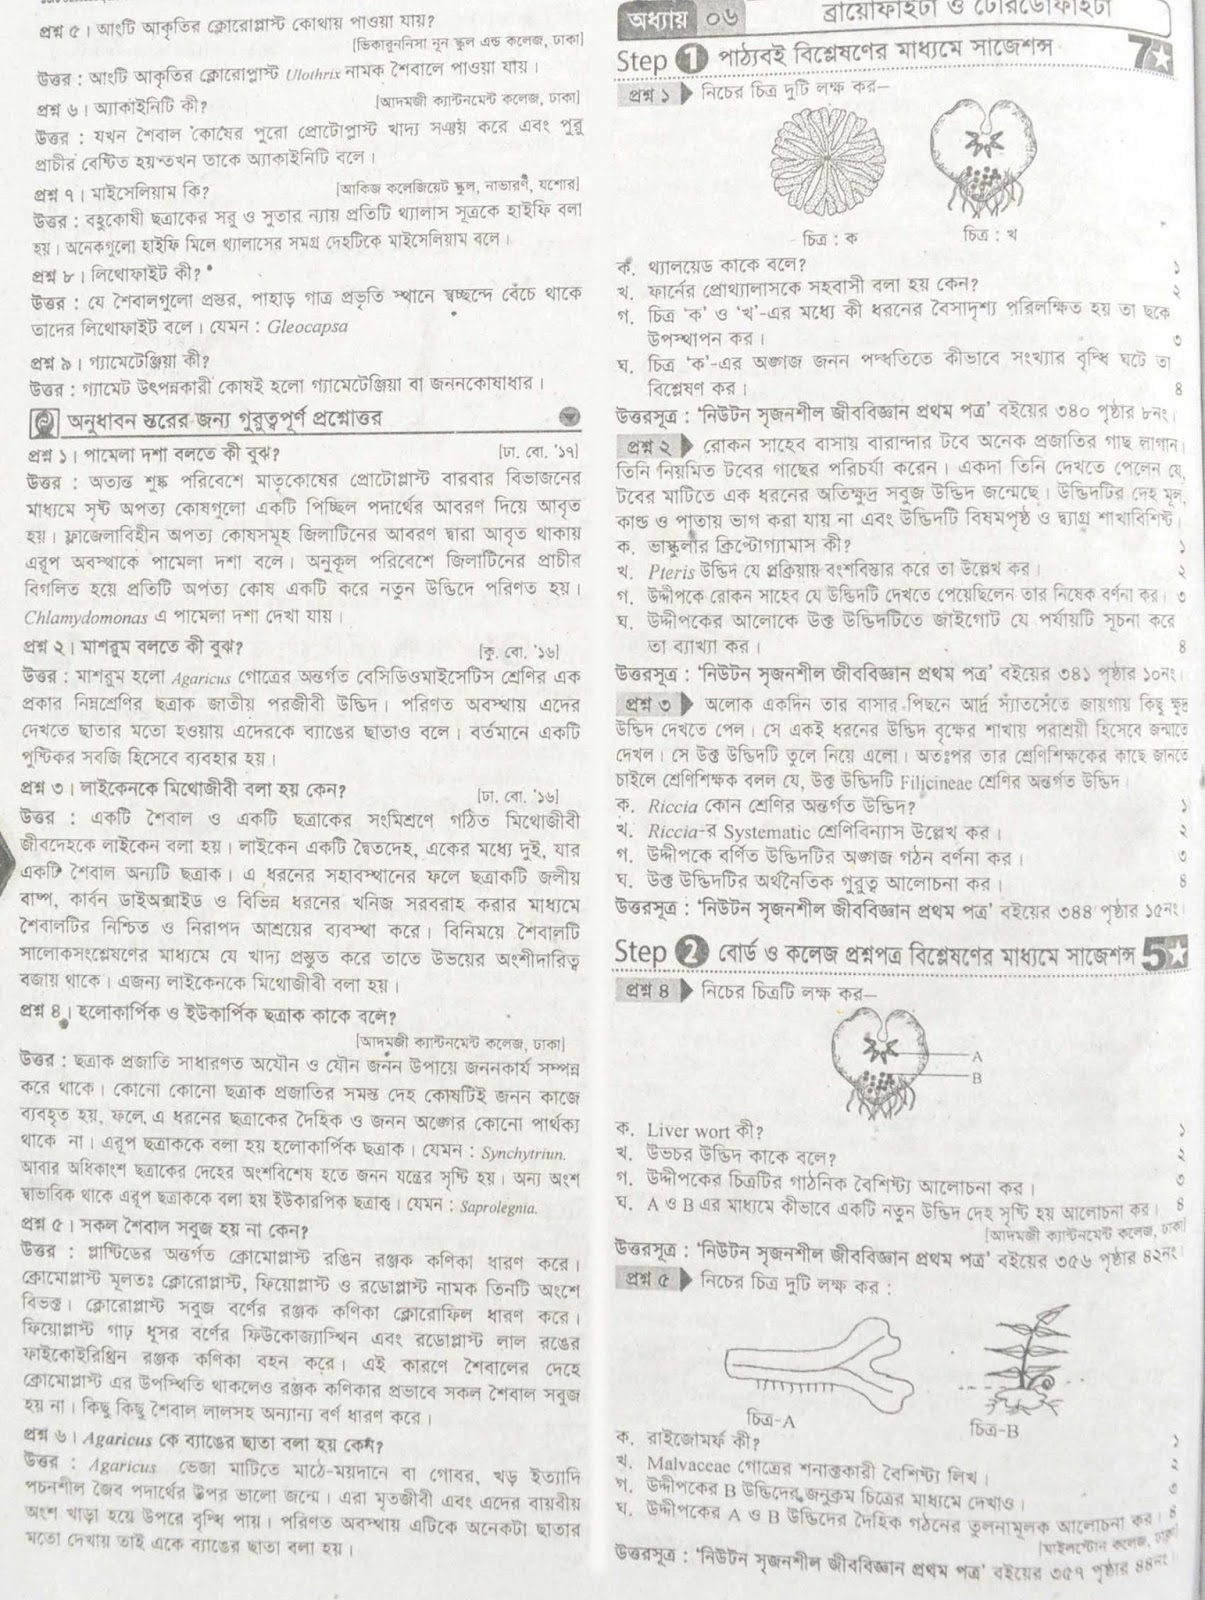 hsc Biology 1st Paper suggestion, exam question paper, model question, mcq question, question pattern, preparation for dhaka board, all boards